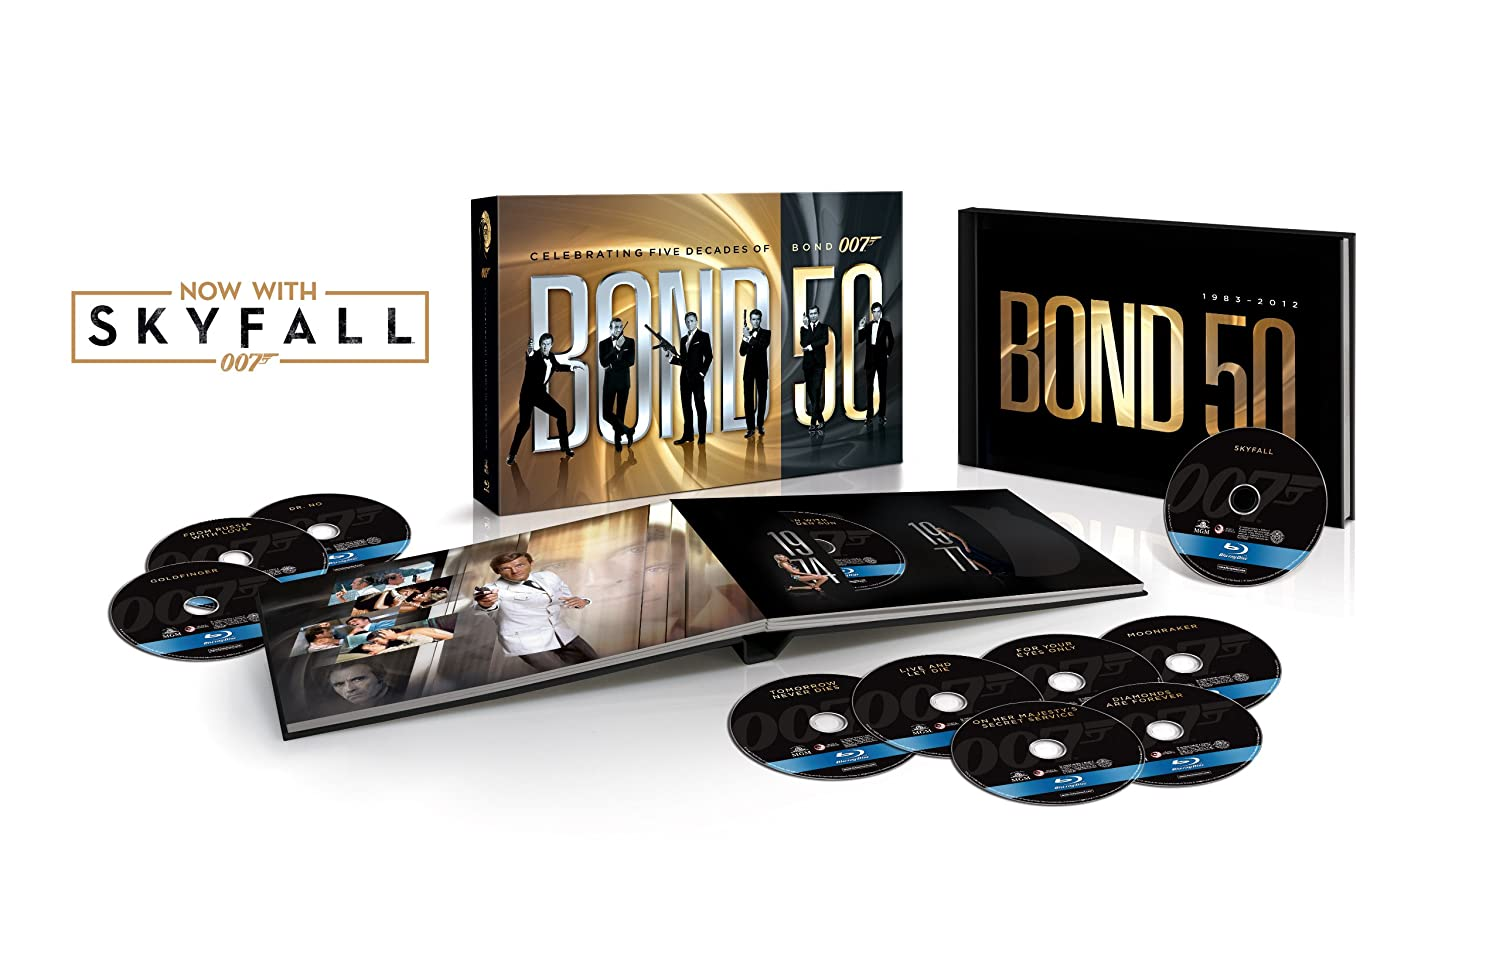 Bond 50: The Complete 23 Film Collection with Skyfall [Blu-ray] 	$139.99